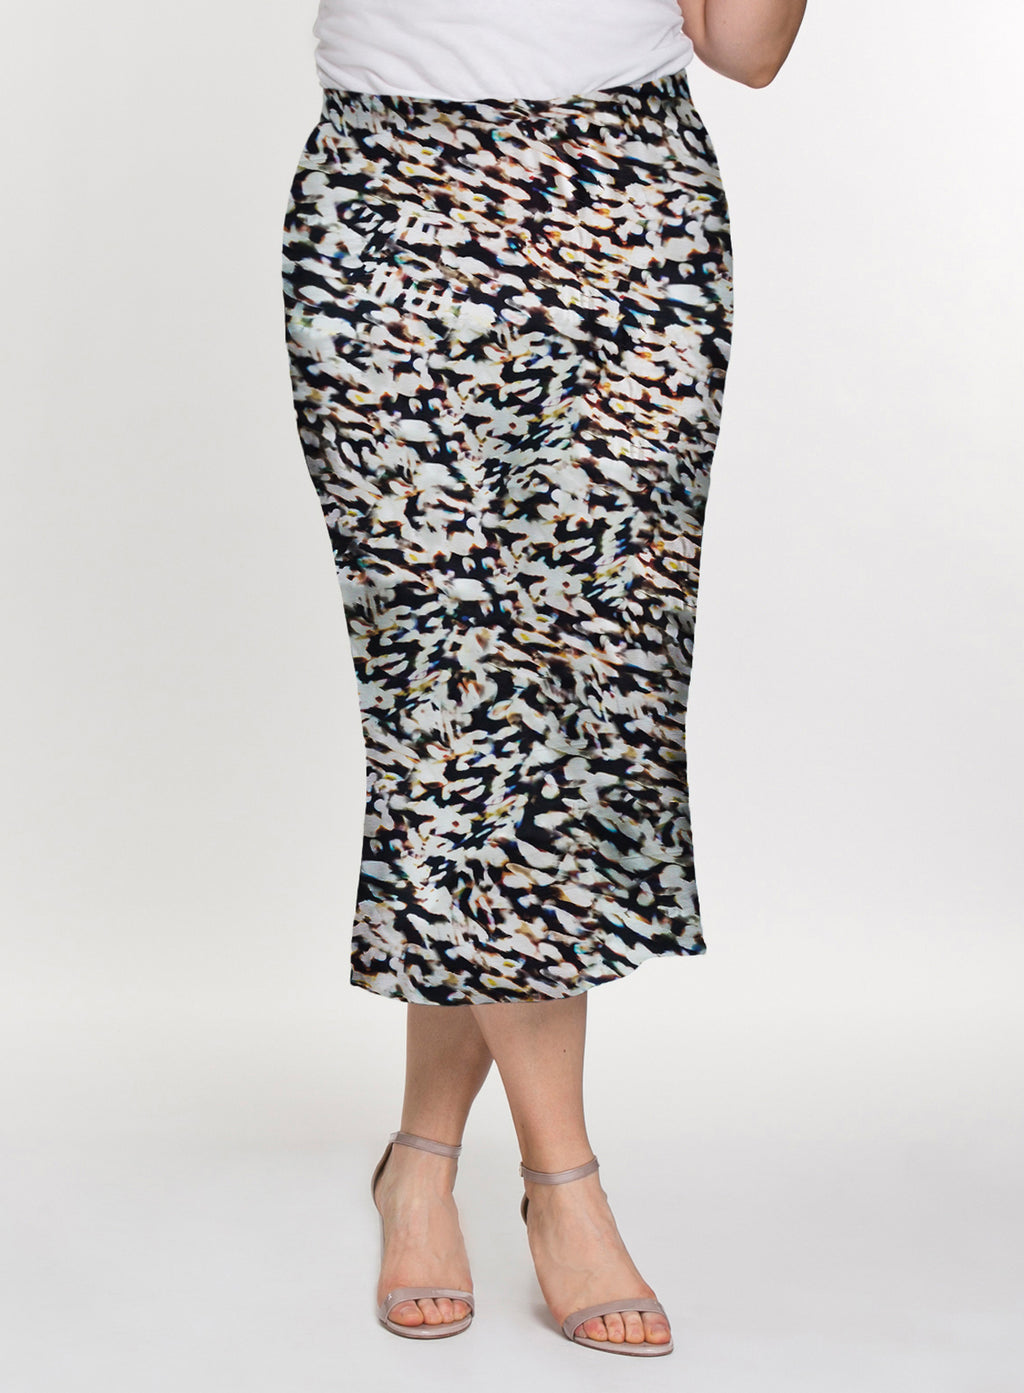 CURVY BLACK AND IVORY PRINTED PULL ON ELASTIC WAIST PLUS SIZE KNIT SKIRT